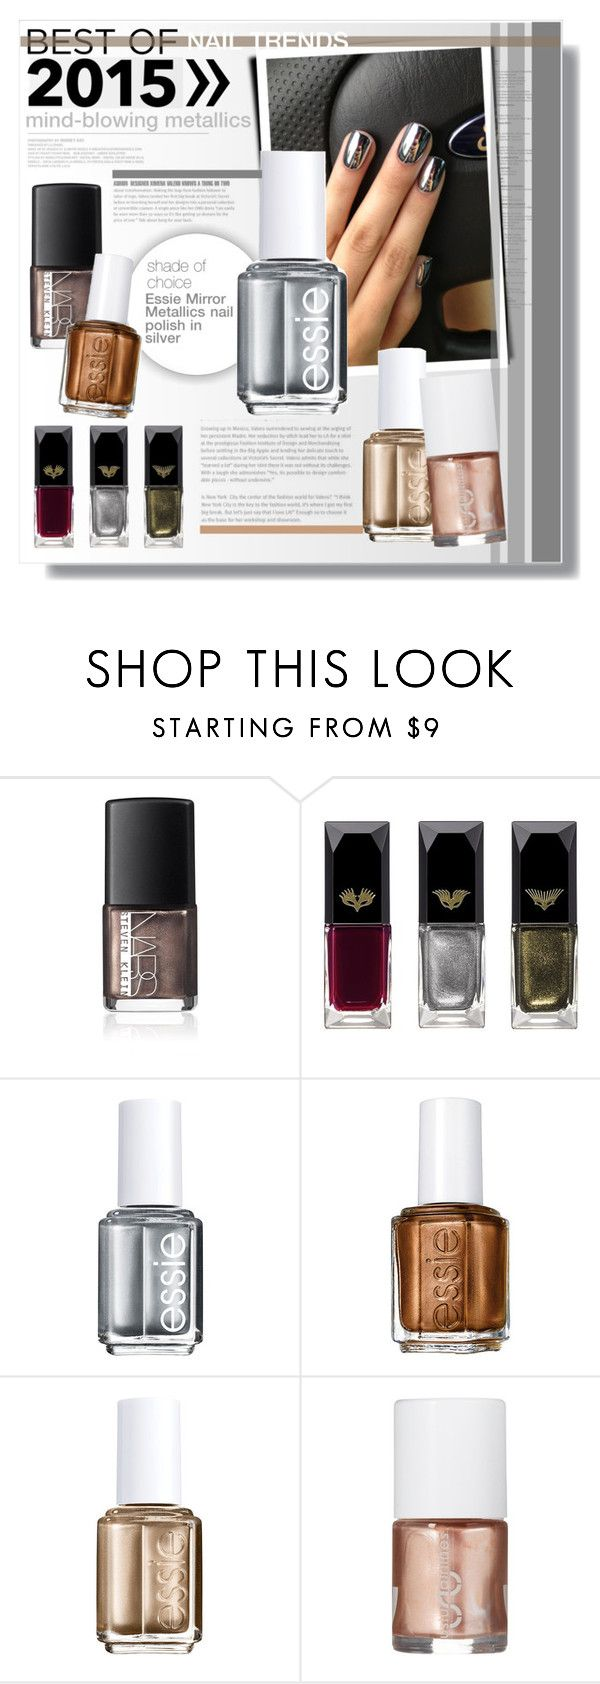 """""""2015 nail trends: chrome domination."""" by sinesnsingularities ❤ liked on Polyvore featuring beauty, NARS Cosmetics, Clé de Peau Beauté, Essie, Uslu Airlines, BeautyTrend, polyvorecommunity, metallicnails and bestof2015"""